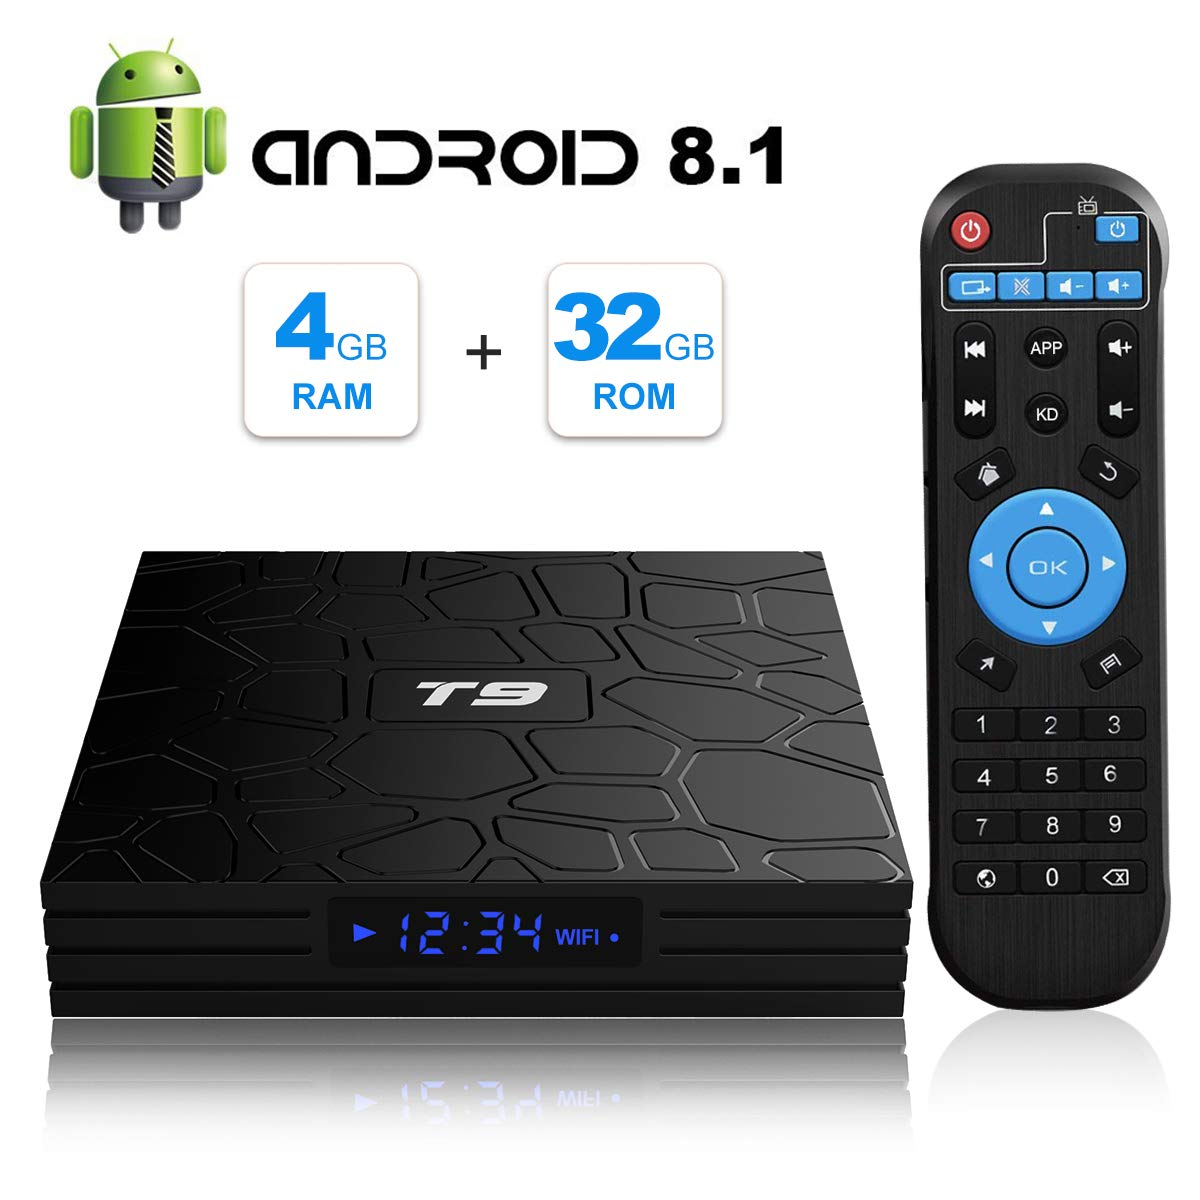 T9 Android 8.1 TV Box 4GB DDR3 RAM 32GB ROM RK3328 Bluetooth 4.1 Quad-Core Cortex-A53 64 Bits Support 2.4GHz WiFi 4K 3D Ultra HD HDMI H.265 by EVER EXPRESS